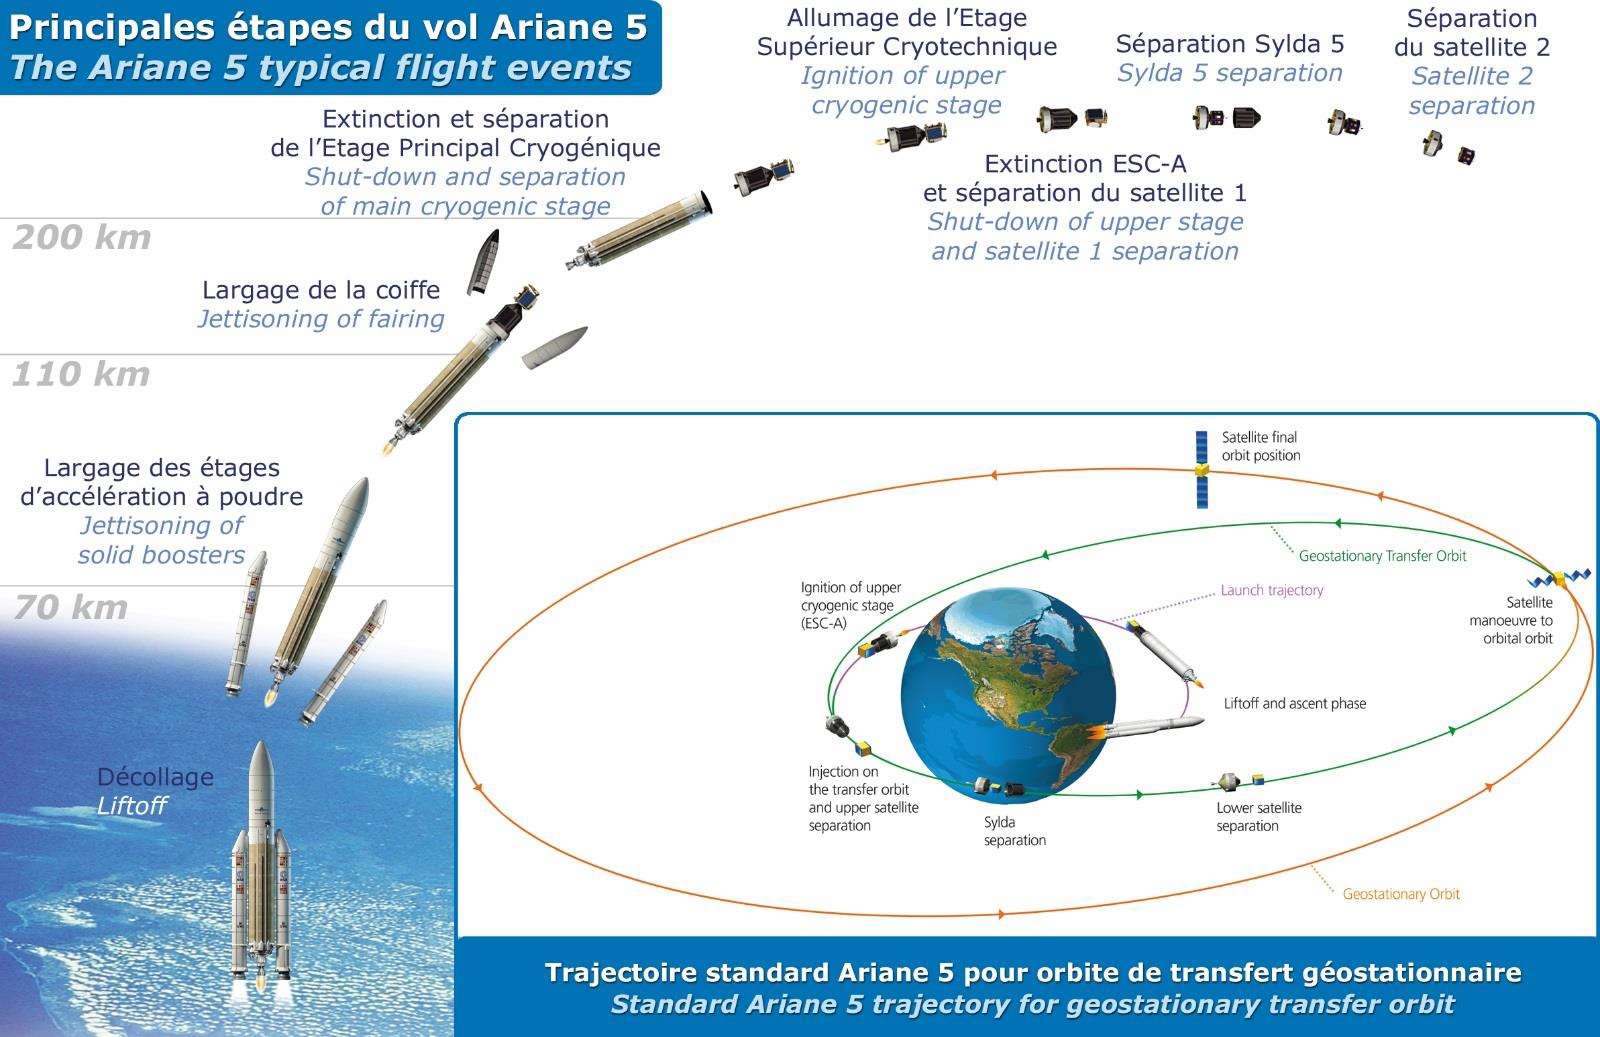 Ariane 5 Launch Profile - Credit: Arianespace